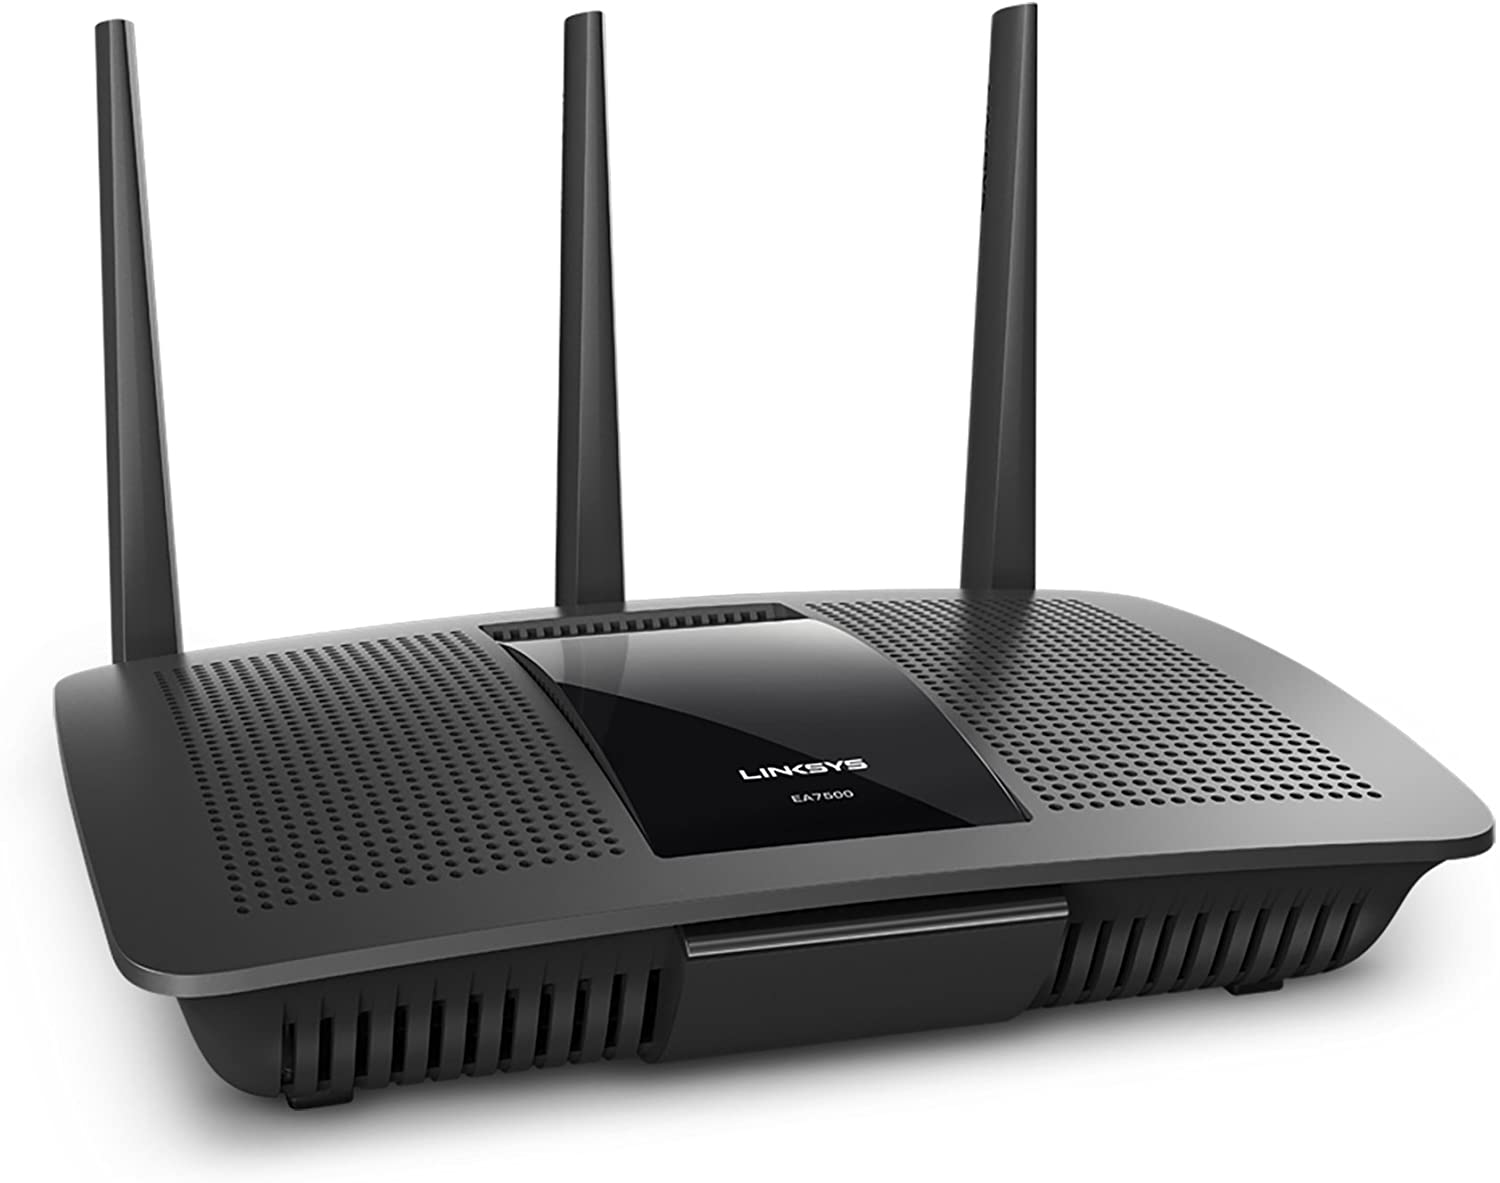 Top Cheap Budget Wireless Routers in 2020 - Under $100,Wireless Routers in 2020,Wireless Routers Under $100,Cheap Budget Wireless Routers, DigitalUpBeat - Your one step shop for all your  tech gifts and gadgets